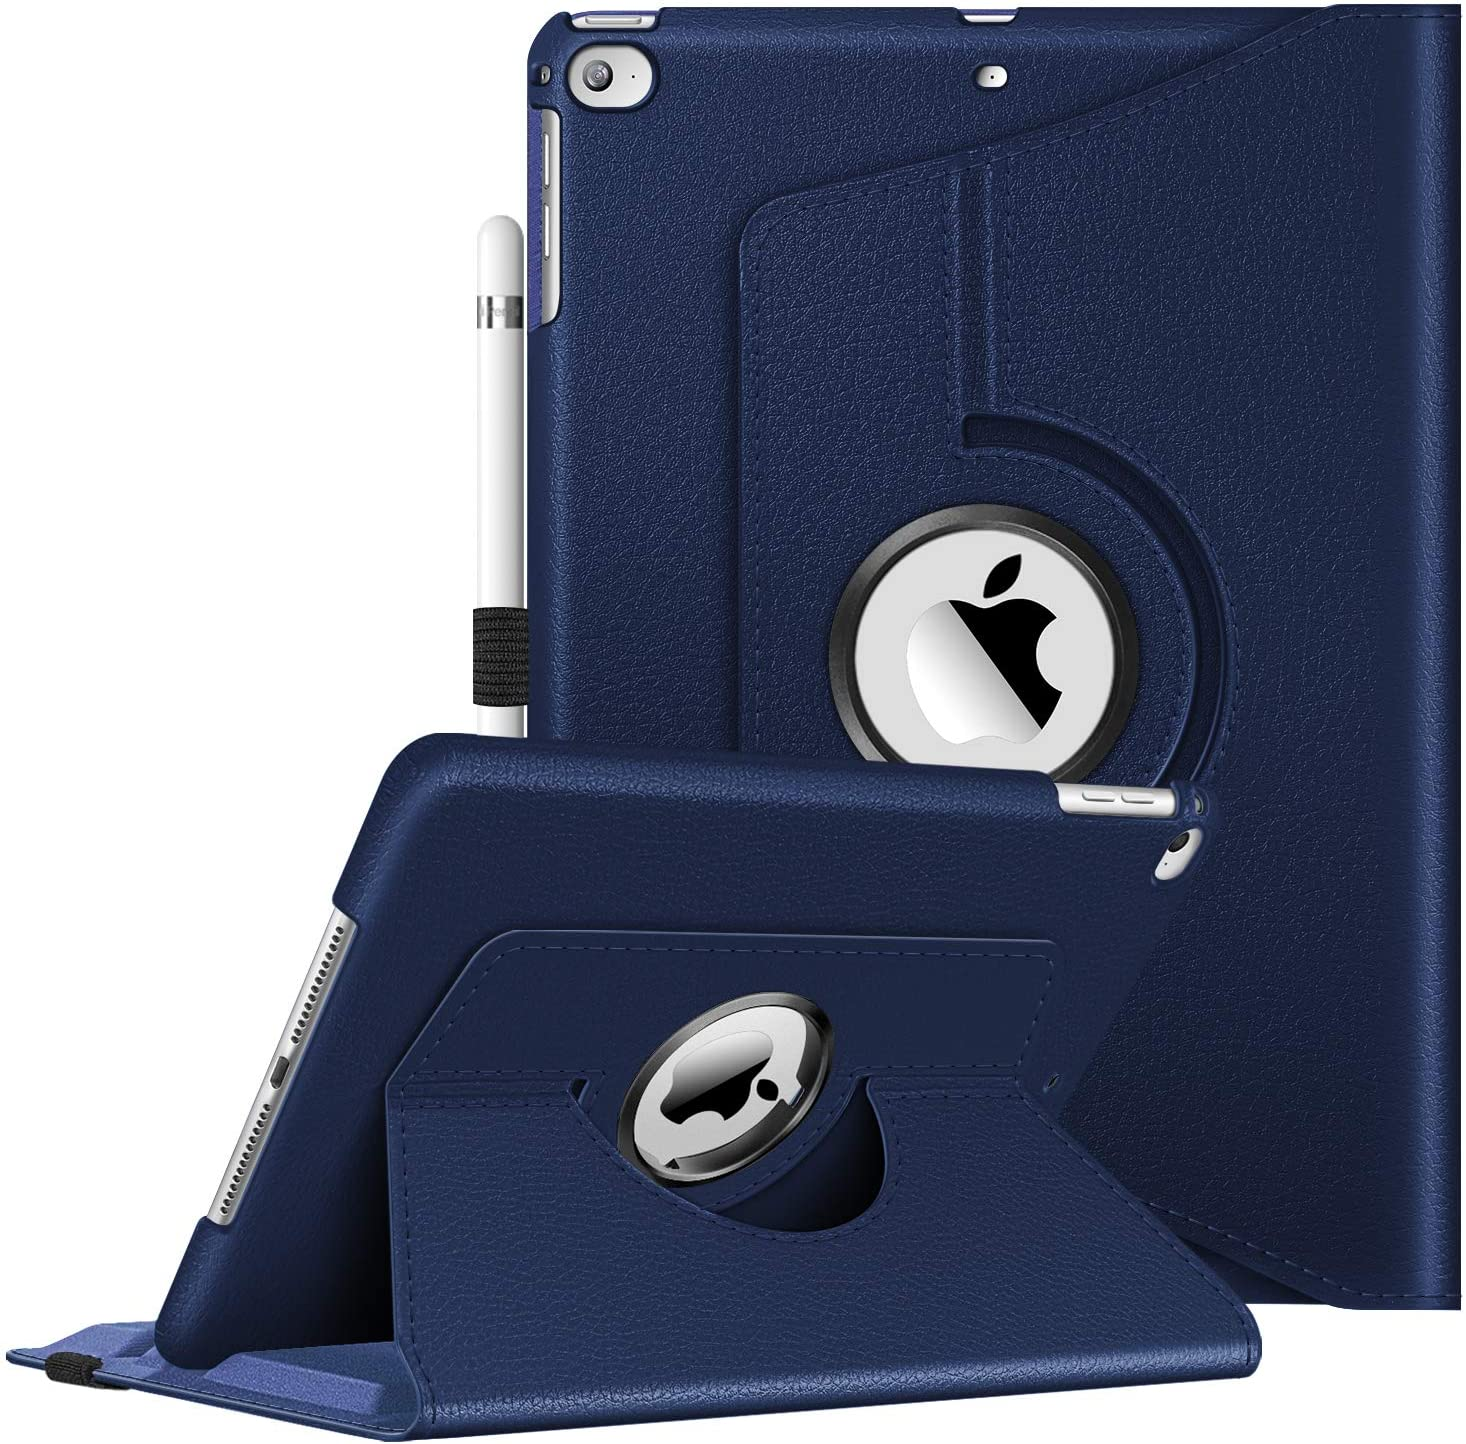 Funda Fintie para iPad 2018 & 2017/iPad Air 1 & 2 Azul